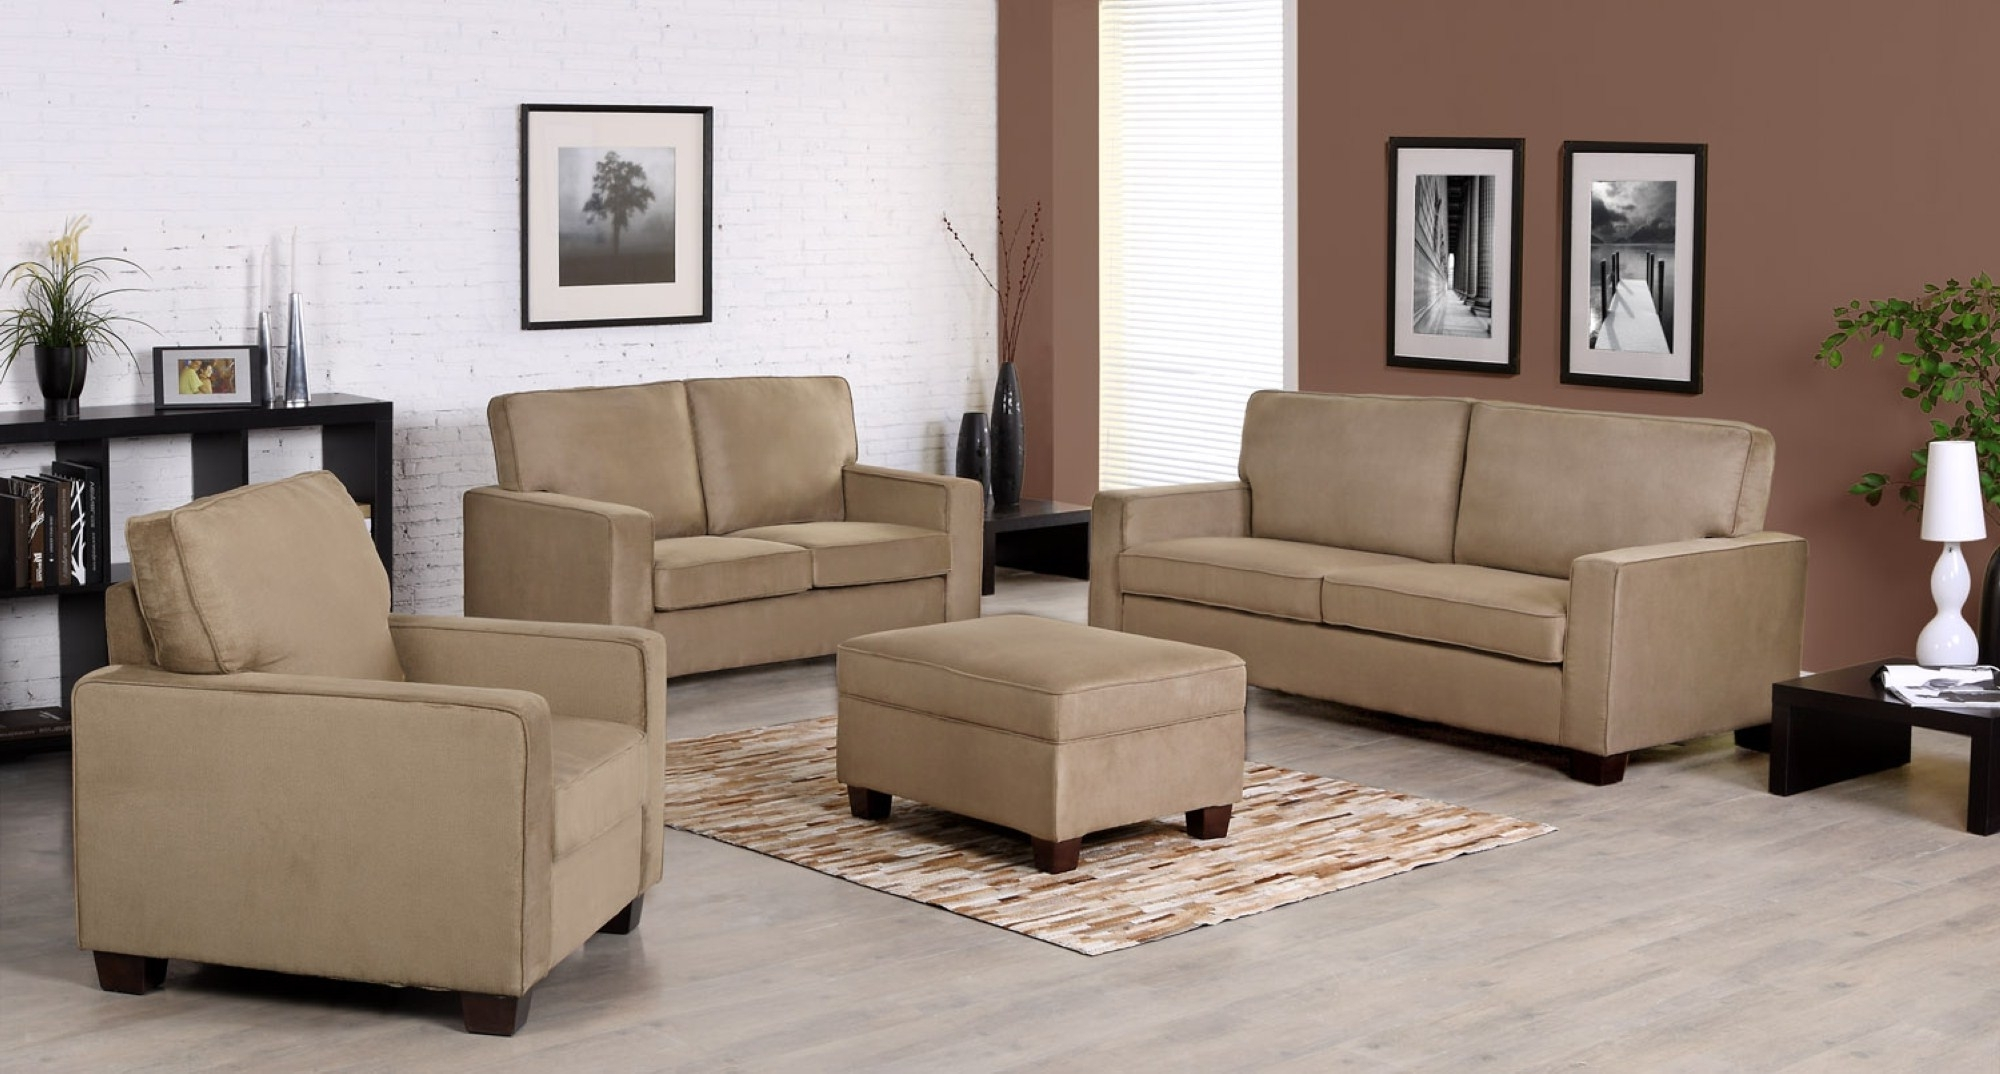 Well Known Sectional Sofas In Hyderabad With Regard To Inspiring Unique Sofa Sets Pictures Best Idea Home Design Unusual (View 18 of 20)